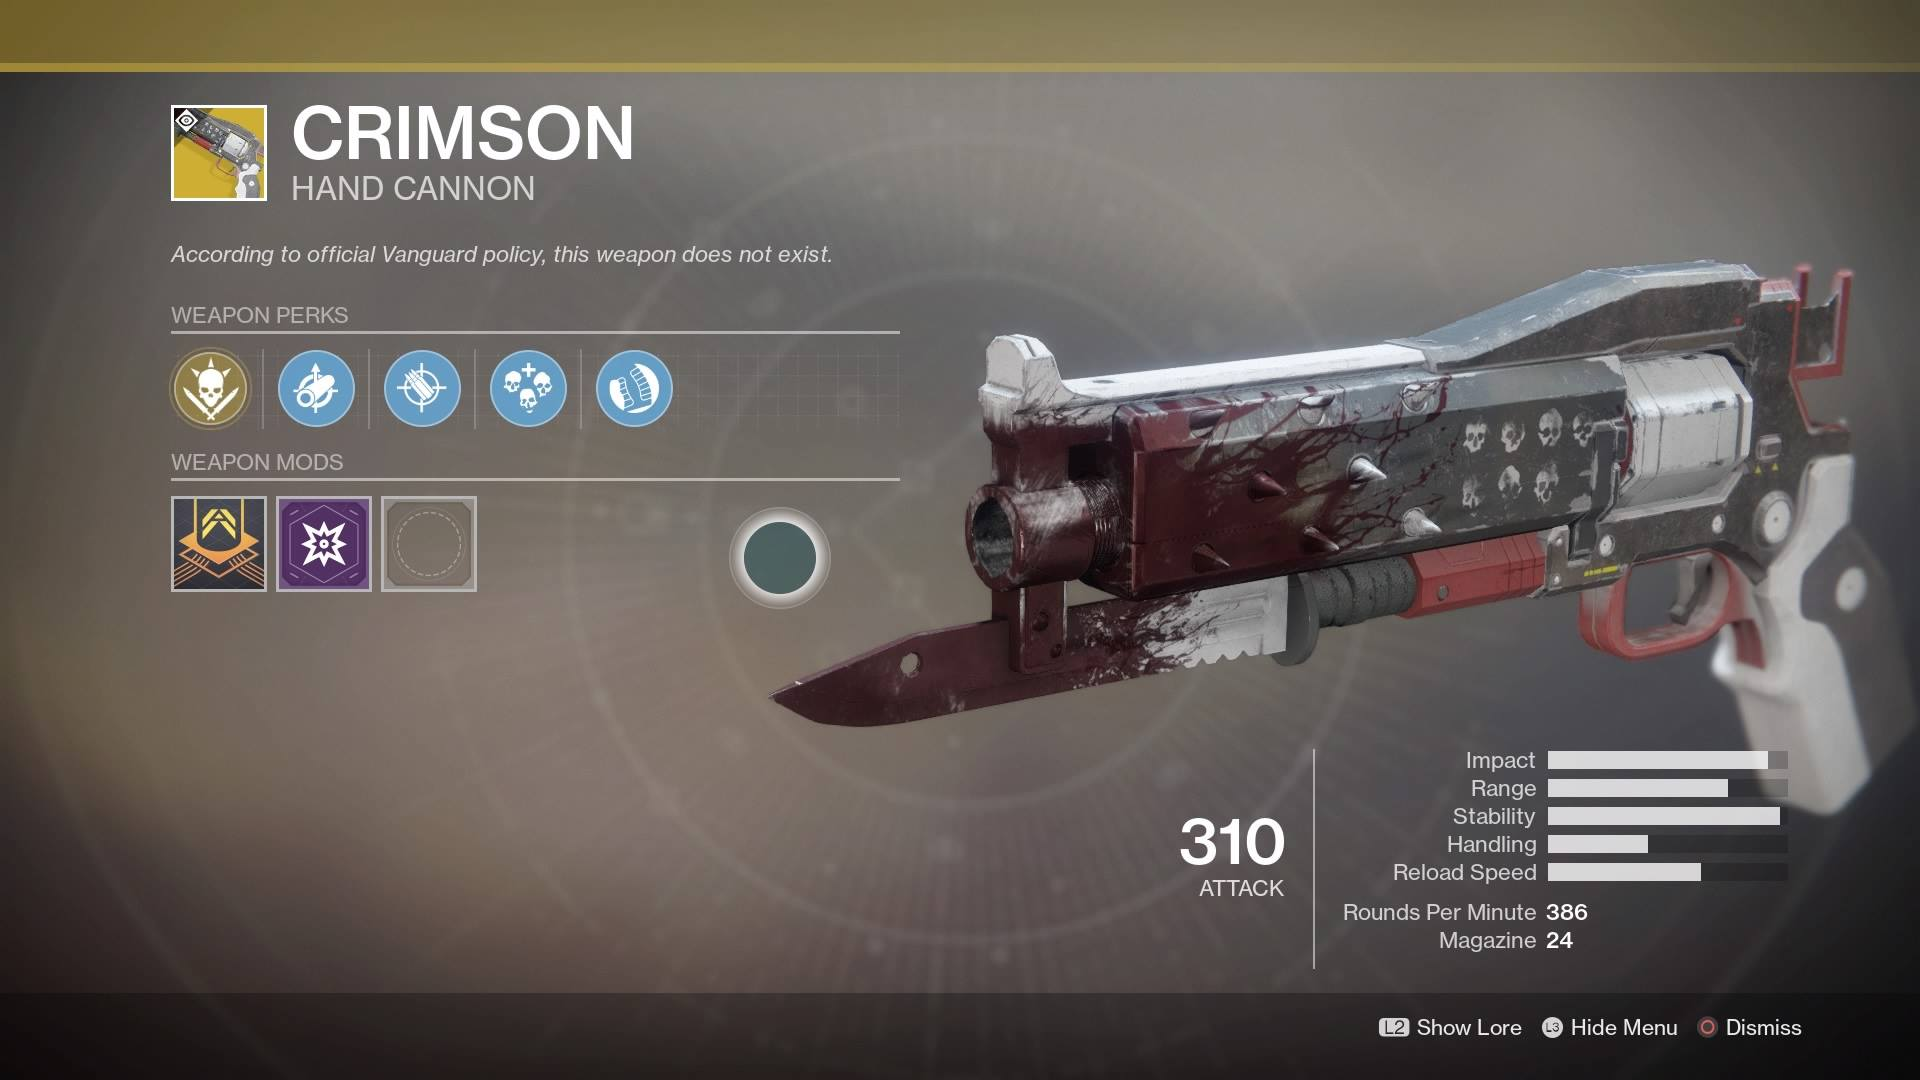 Destiny 2 Curse Of Osiris Check Out The Crimson A Red Death Like Exotic Hand Cannon In This